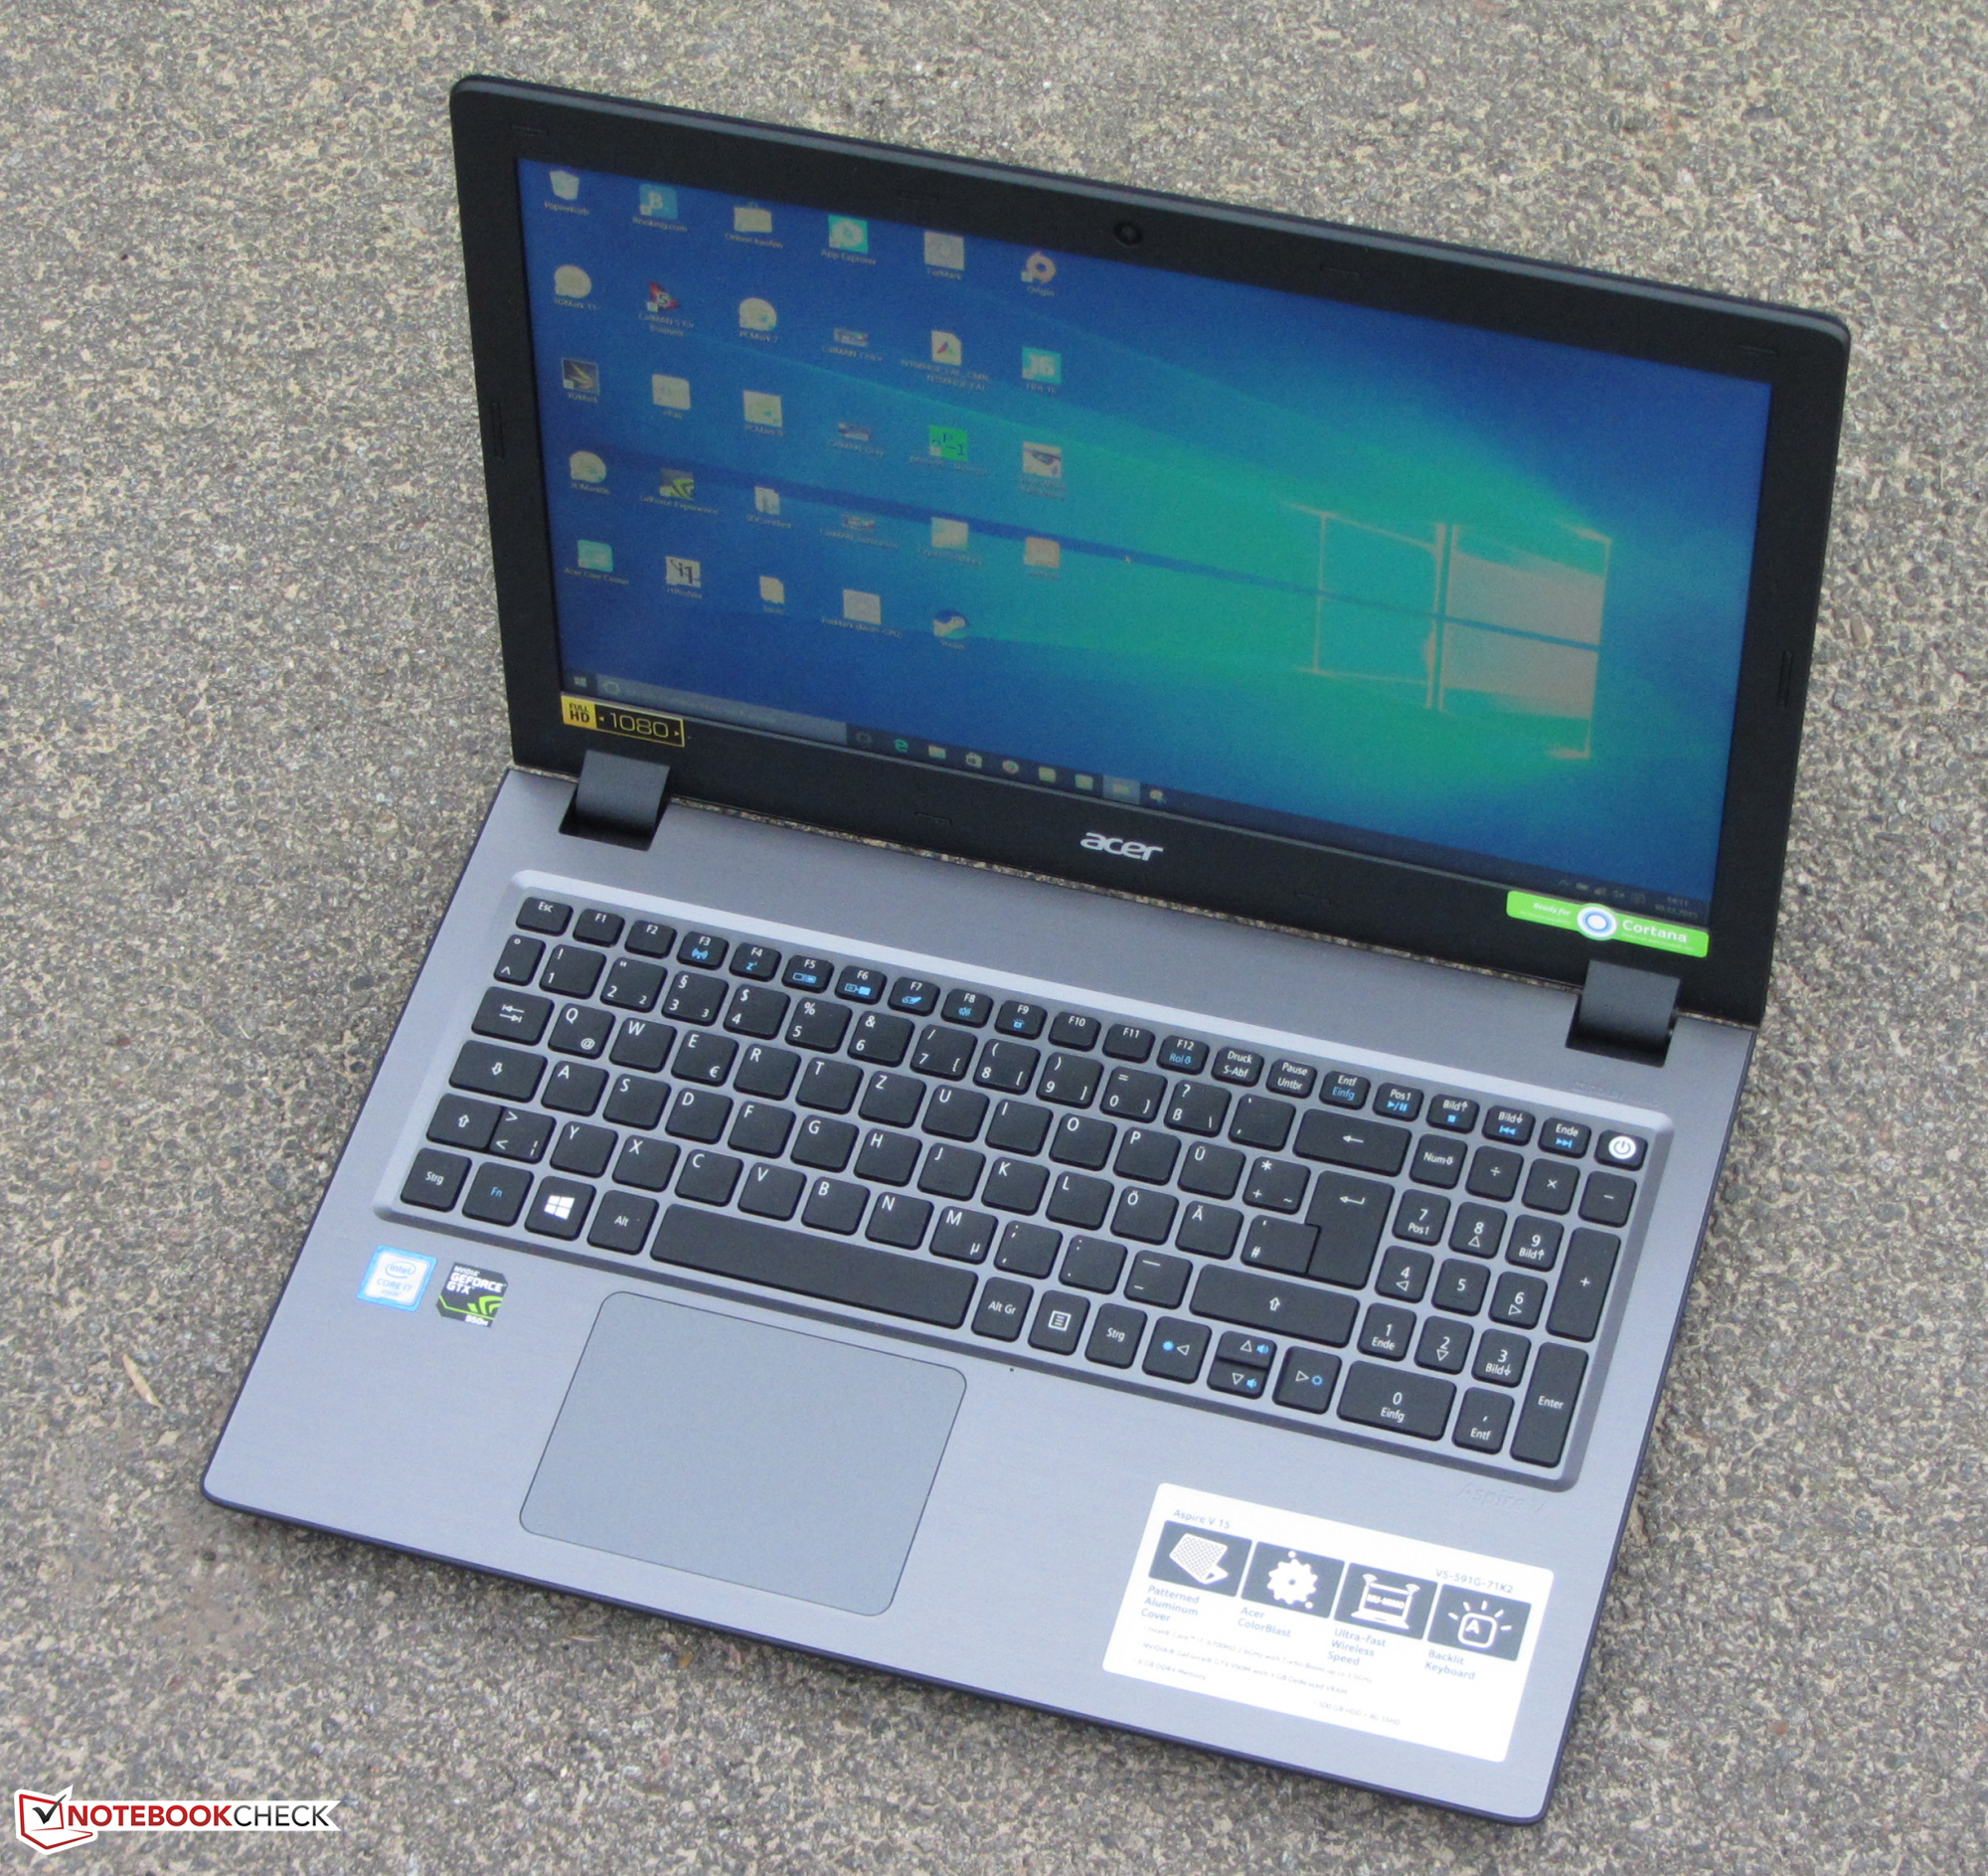 Acer Aspire V5-572PG Realtek LAN Drivers for Mac Download